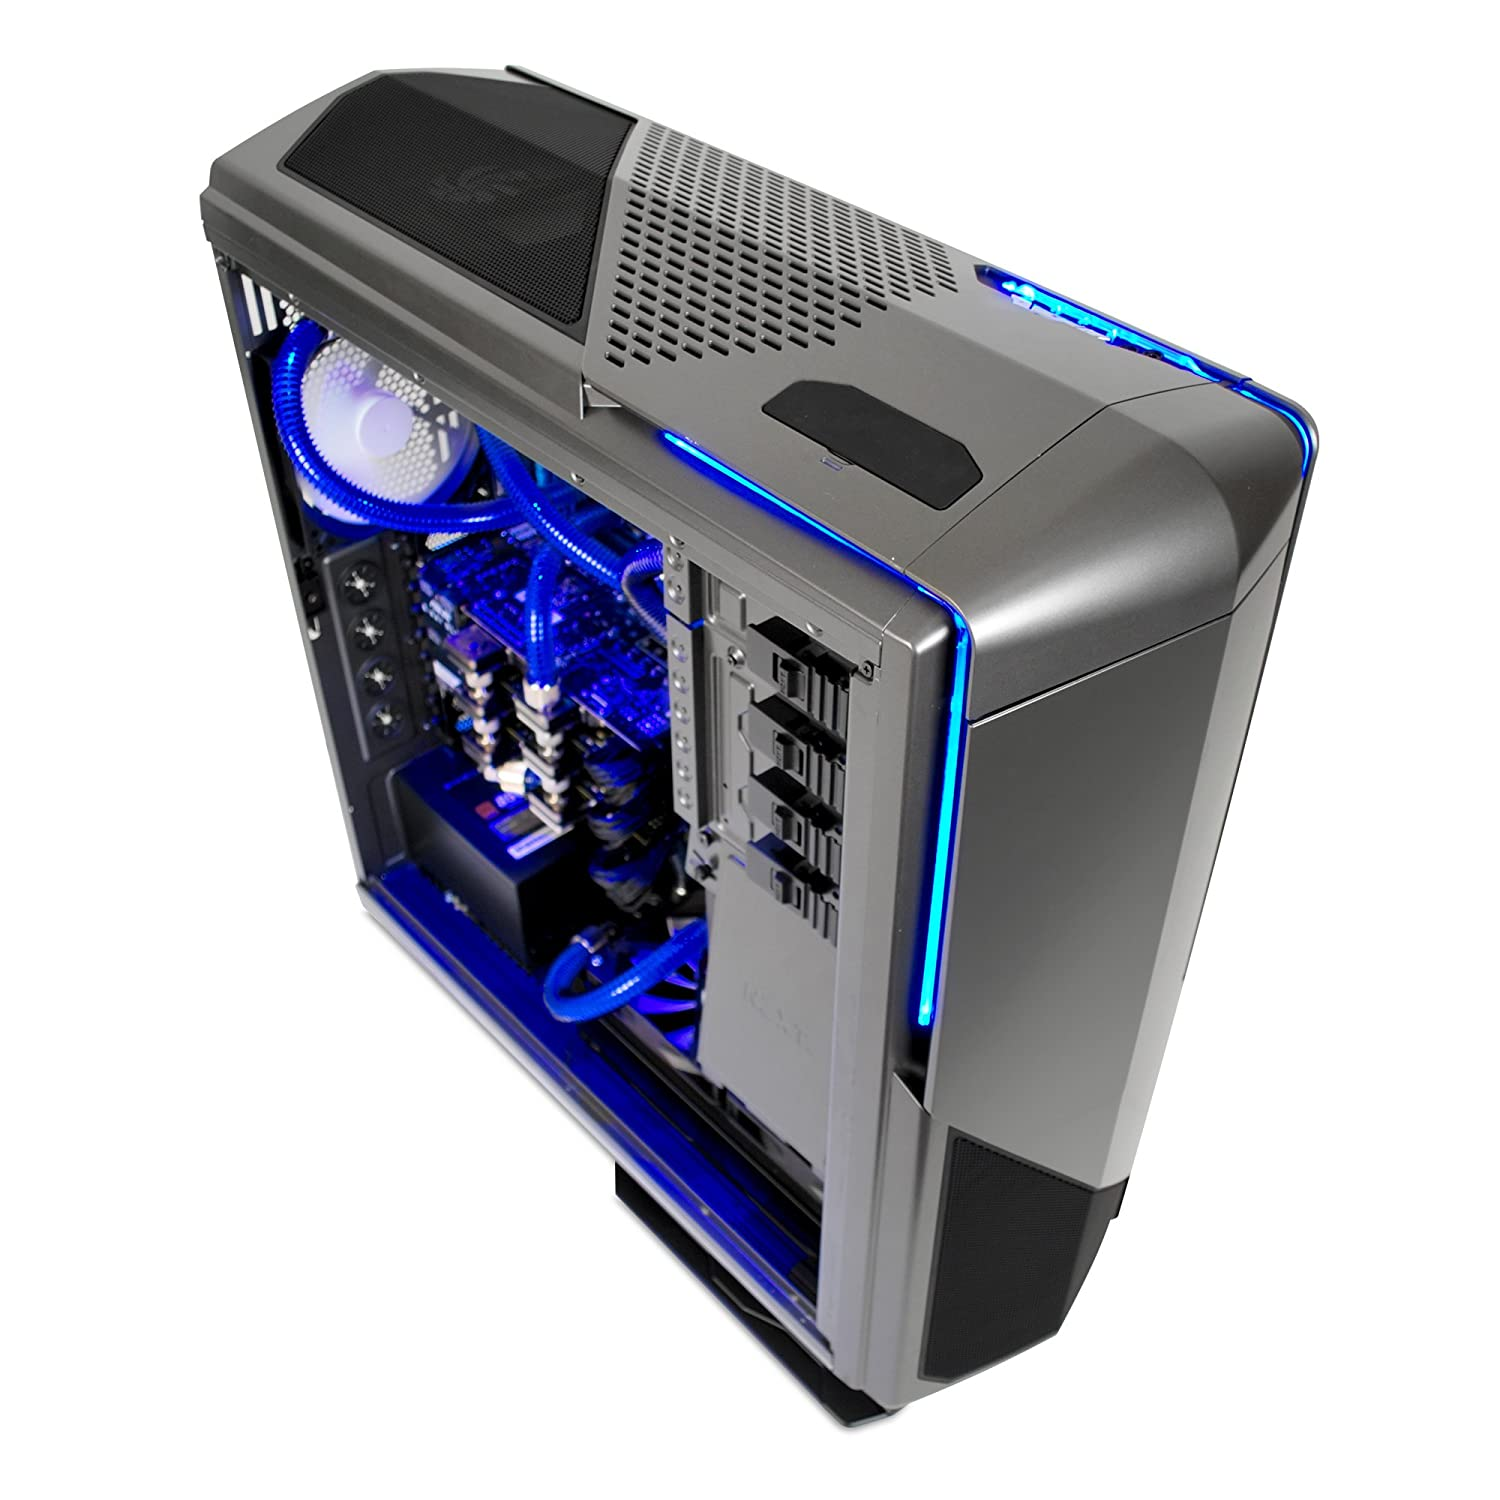 Amazon.com: NZXT Phantom 820 Full Tower Chassis with RGB Color Changing  Lights and Fan Control CA-PH820-G1, Gunmetal (Shell Only): Computers &  Accessories